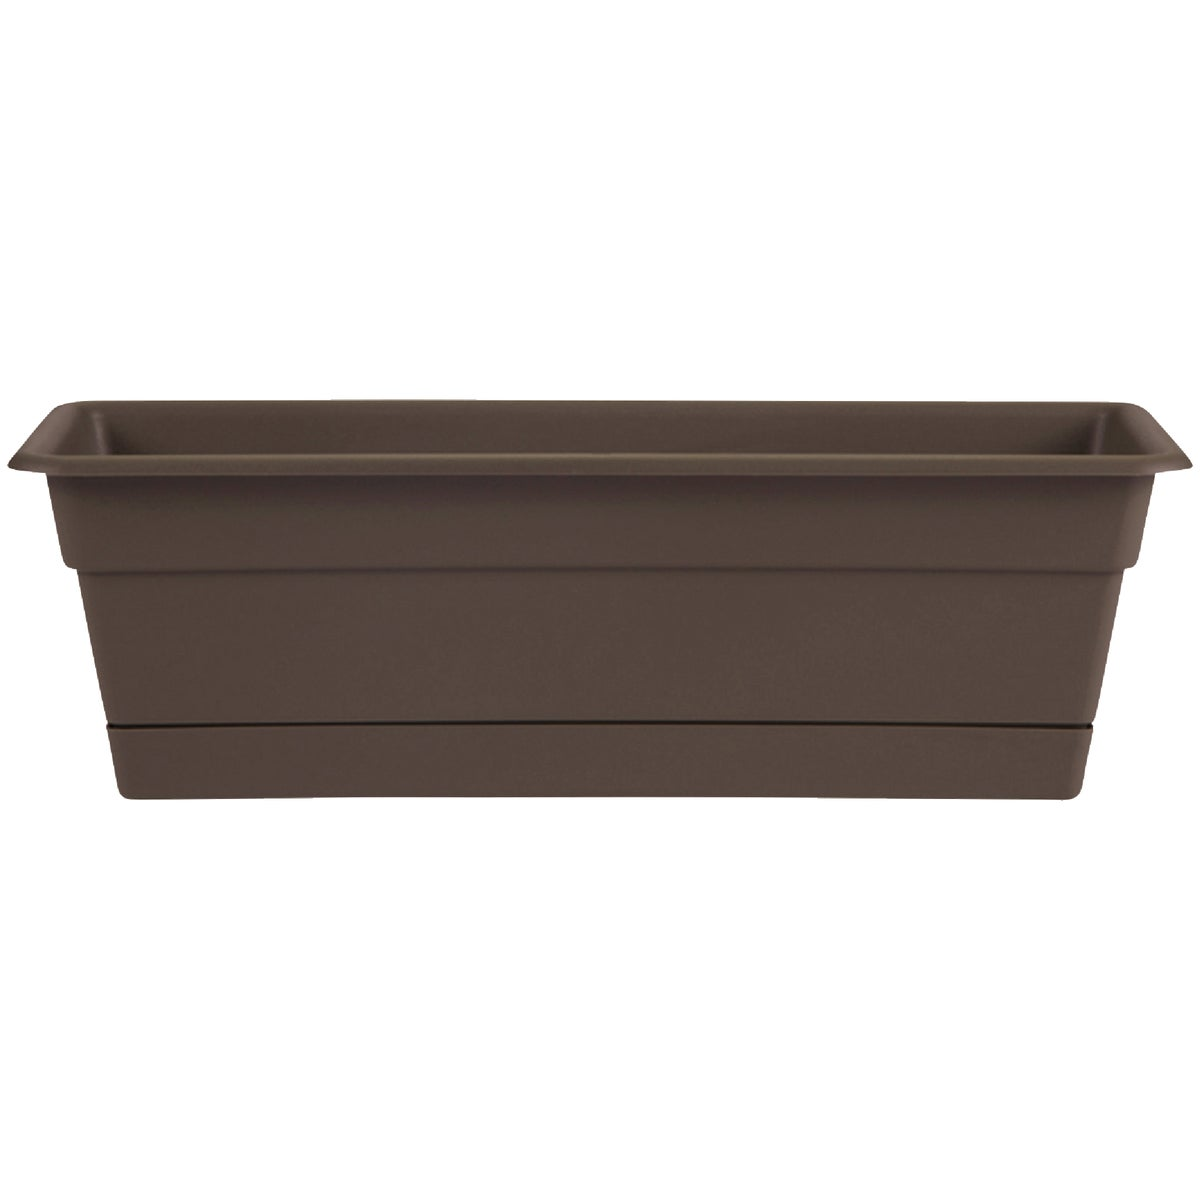 "24"" CHOC WINDOW BOX"